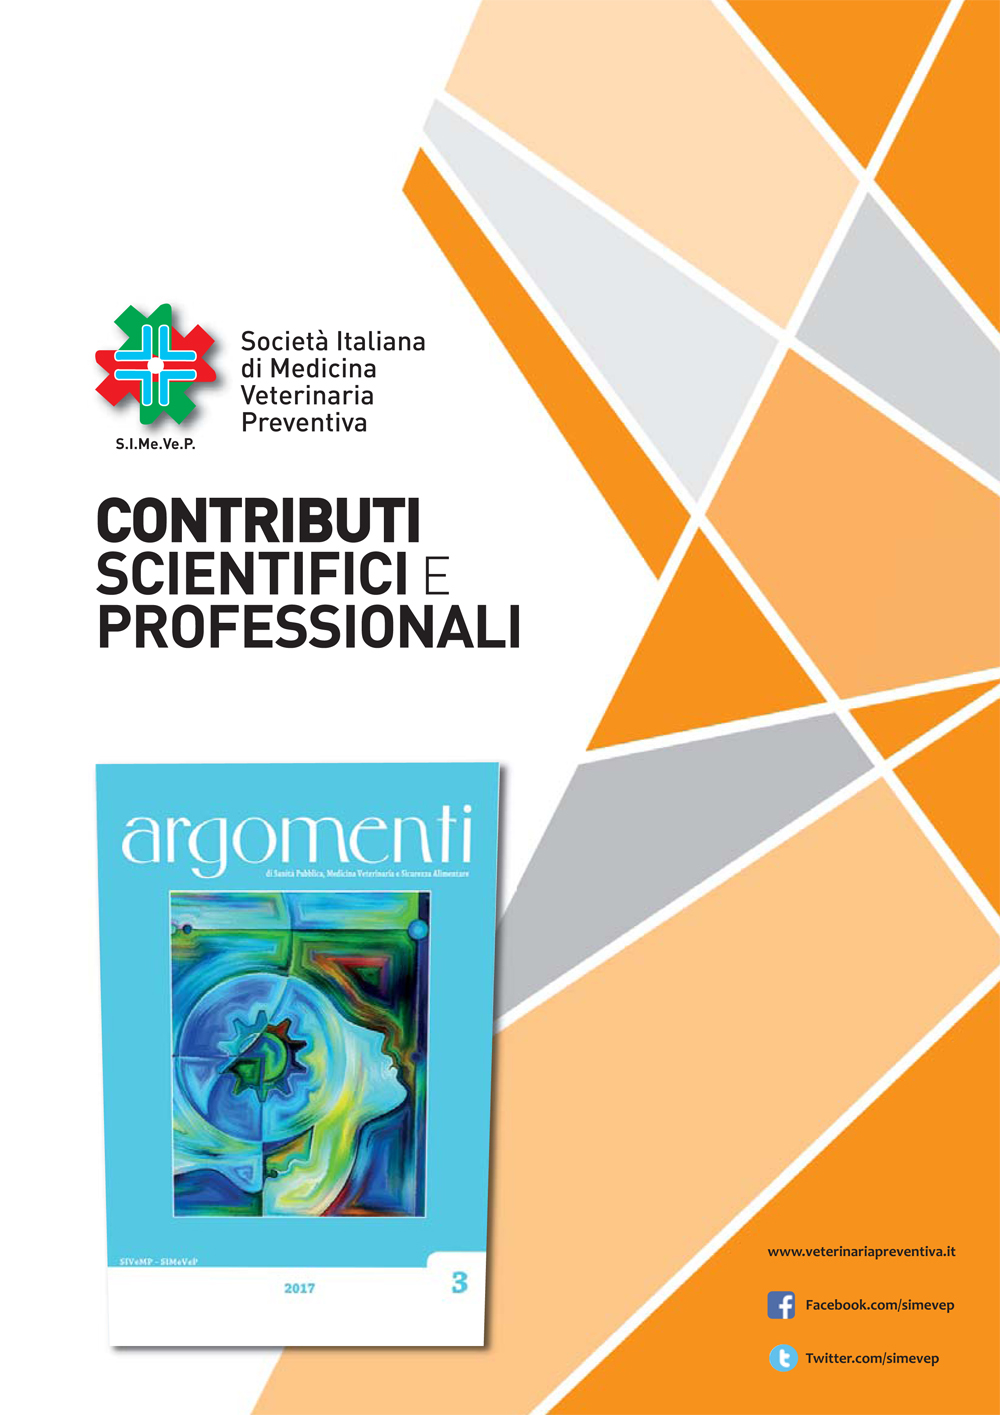 Copertina_scientifica_3_17